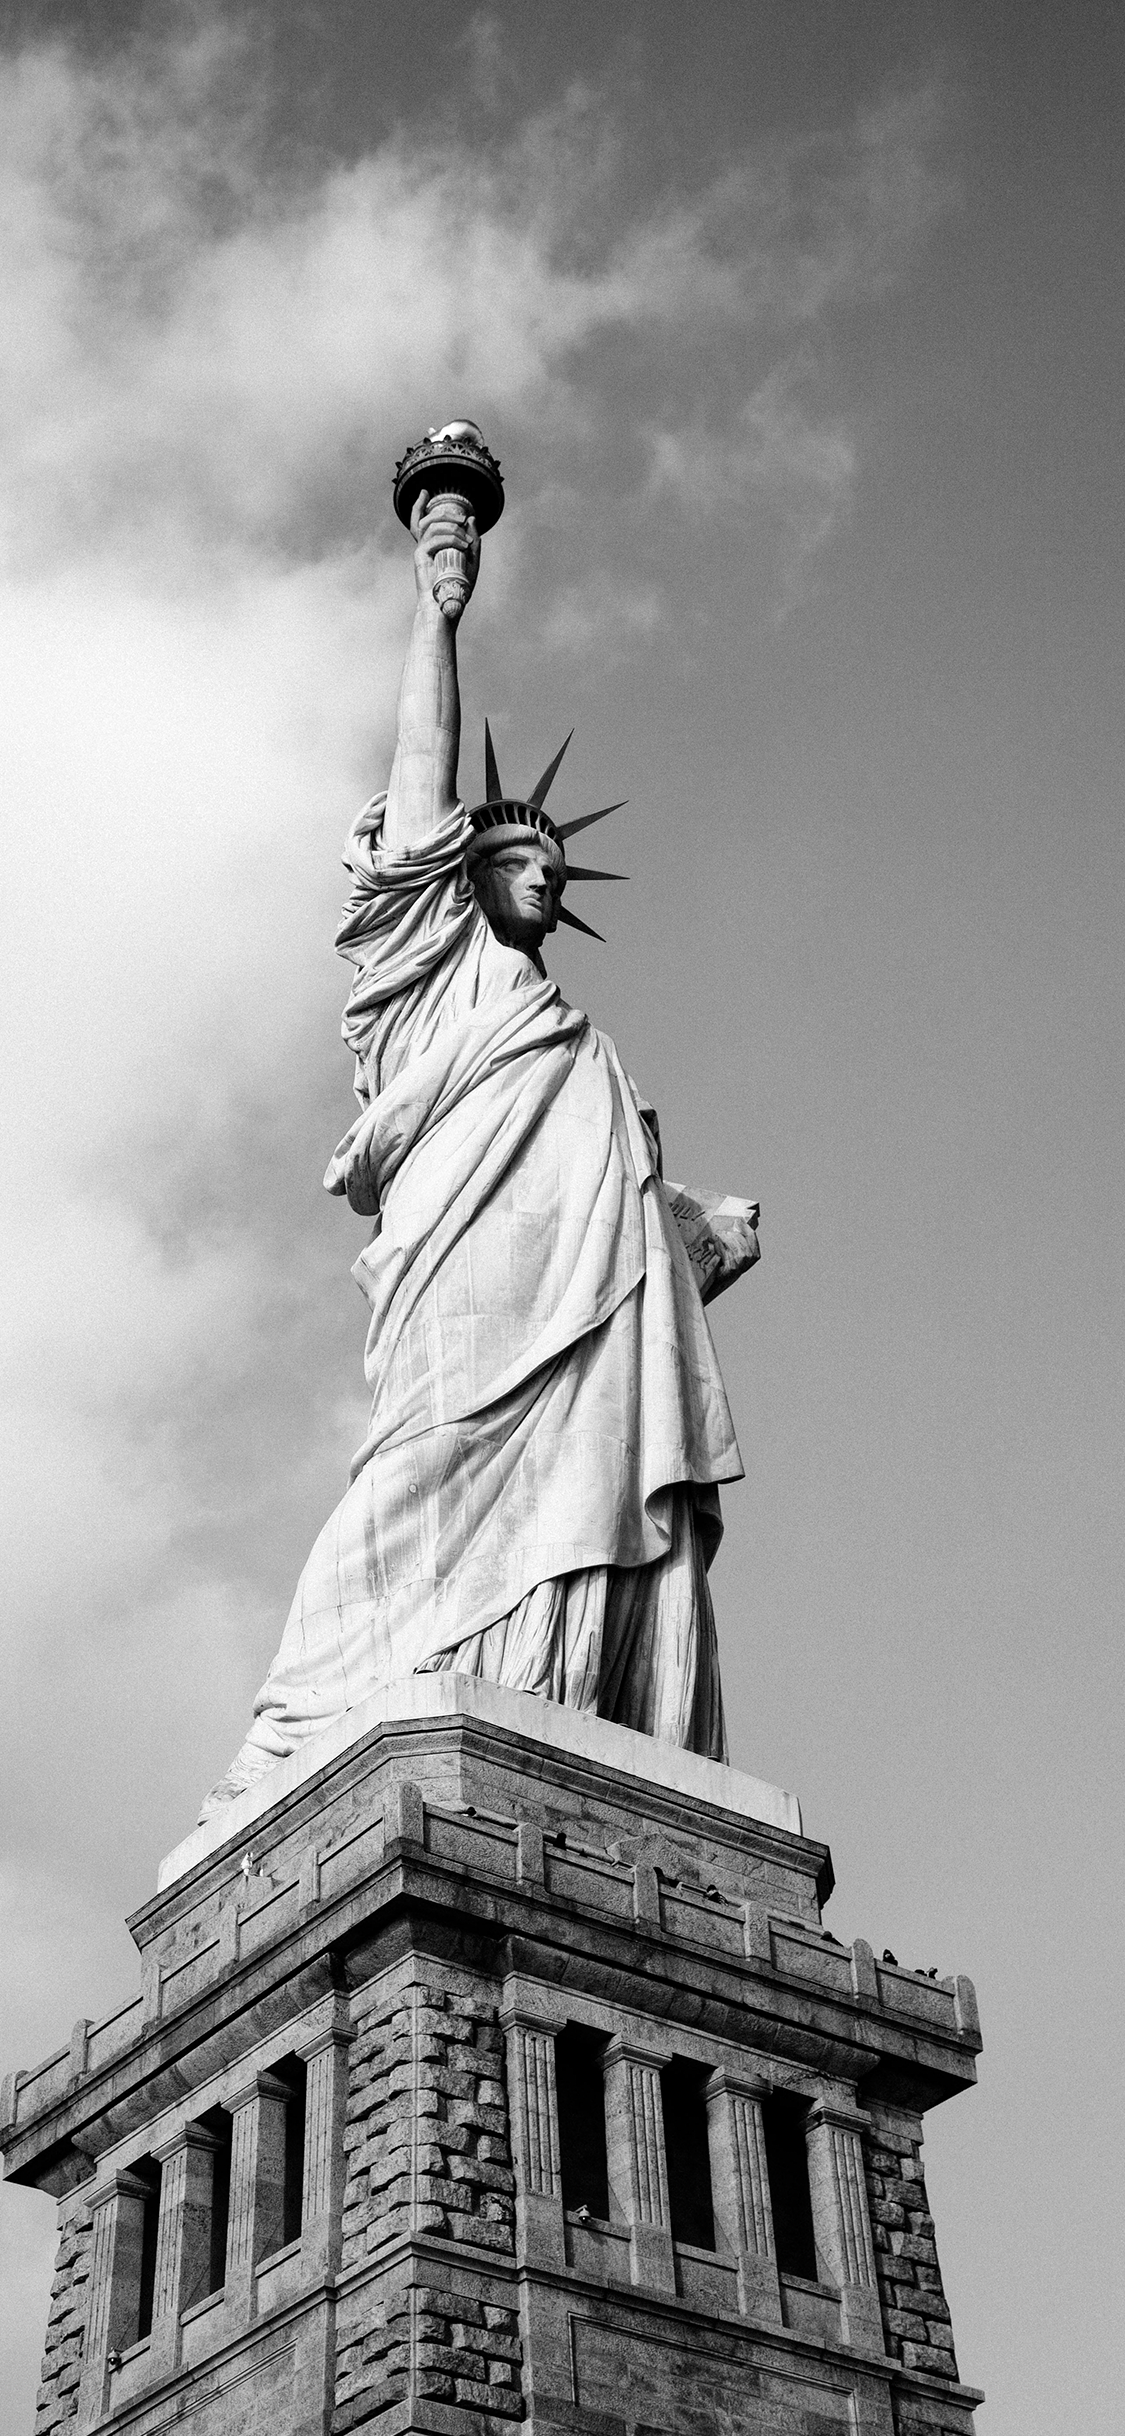 iPhone wallpaper black white statue Fonds d'écran iPhone du 26/09/2018